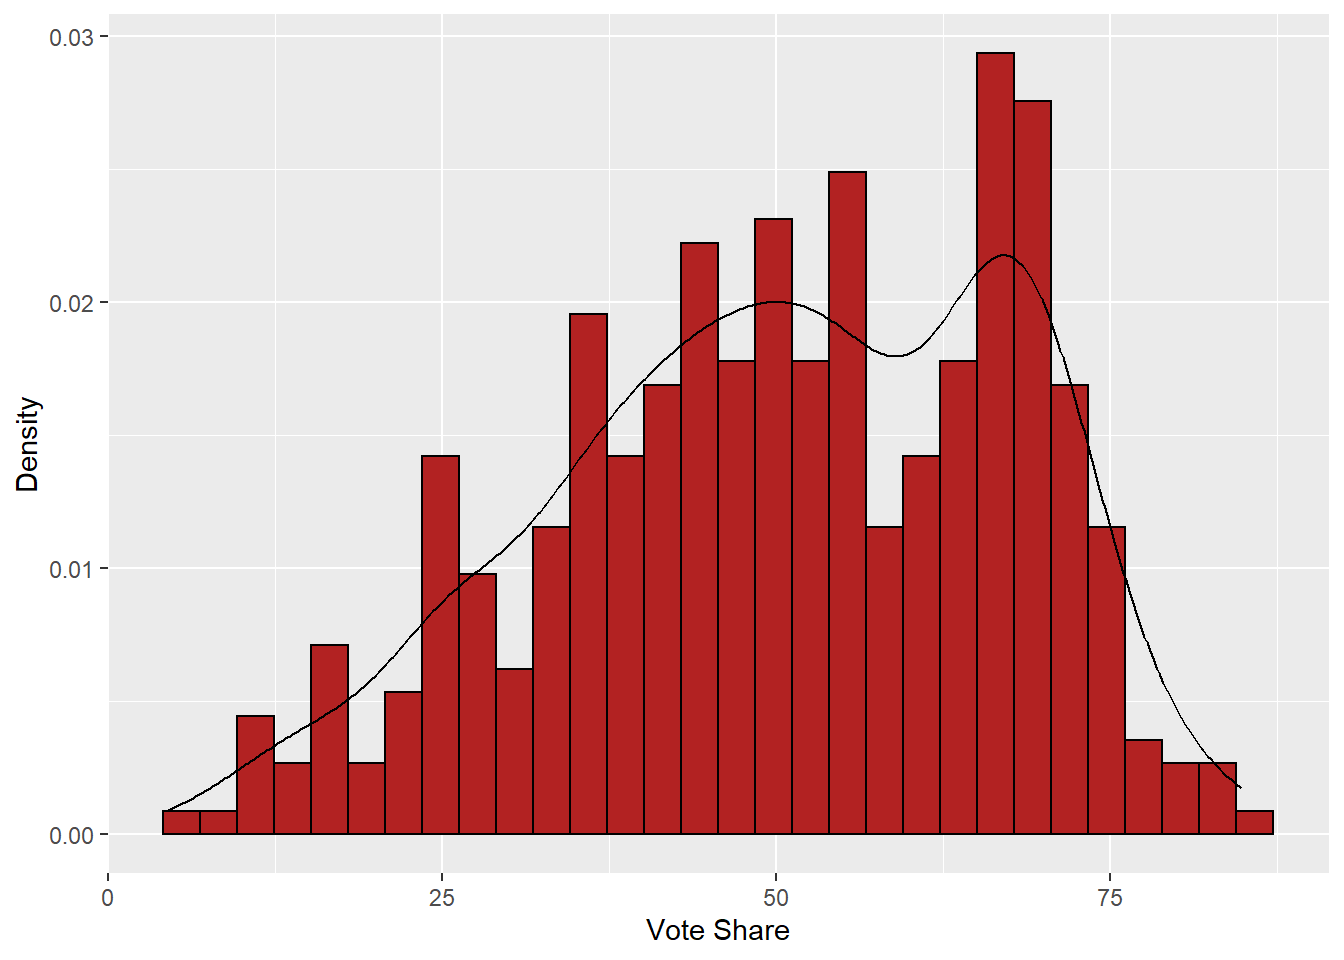 R Histogram and Kernel Density Plot for Vote Share